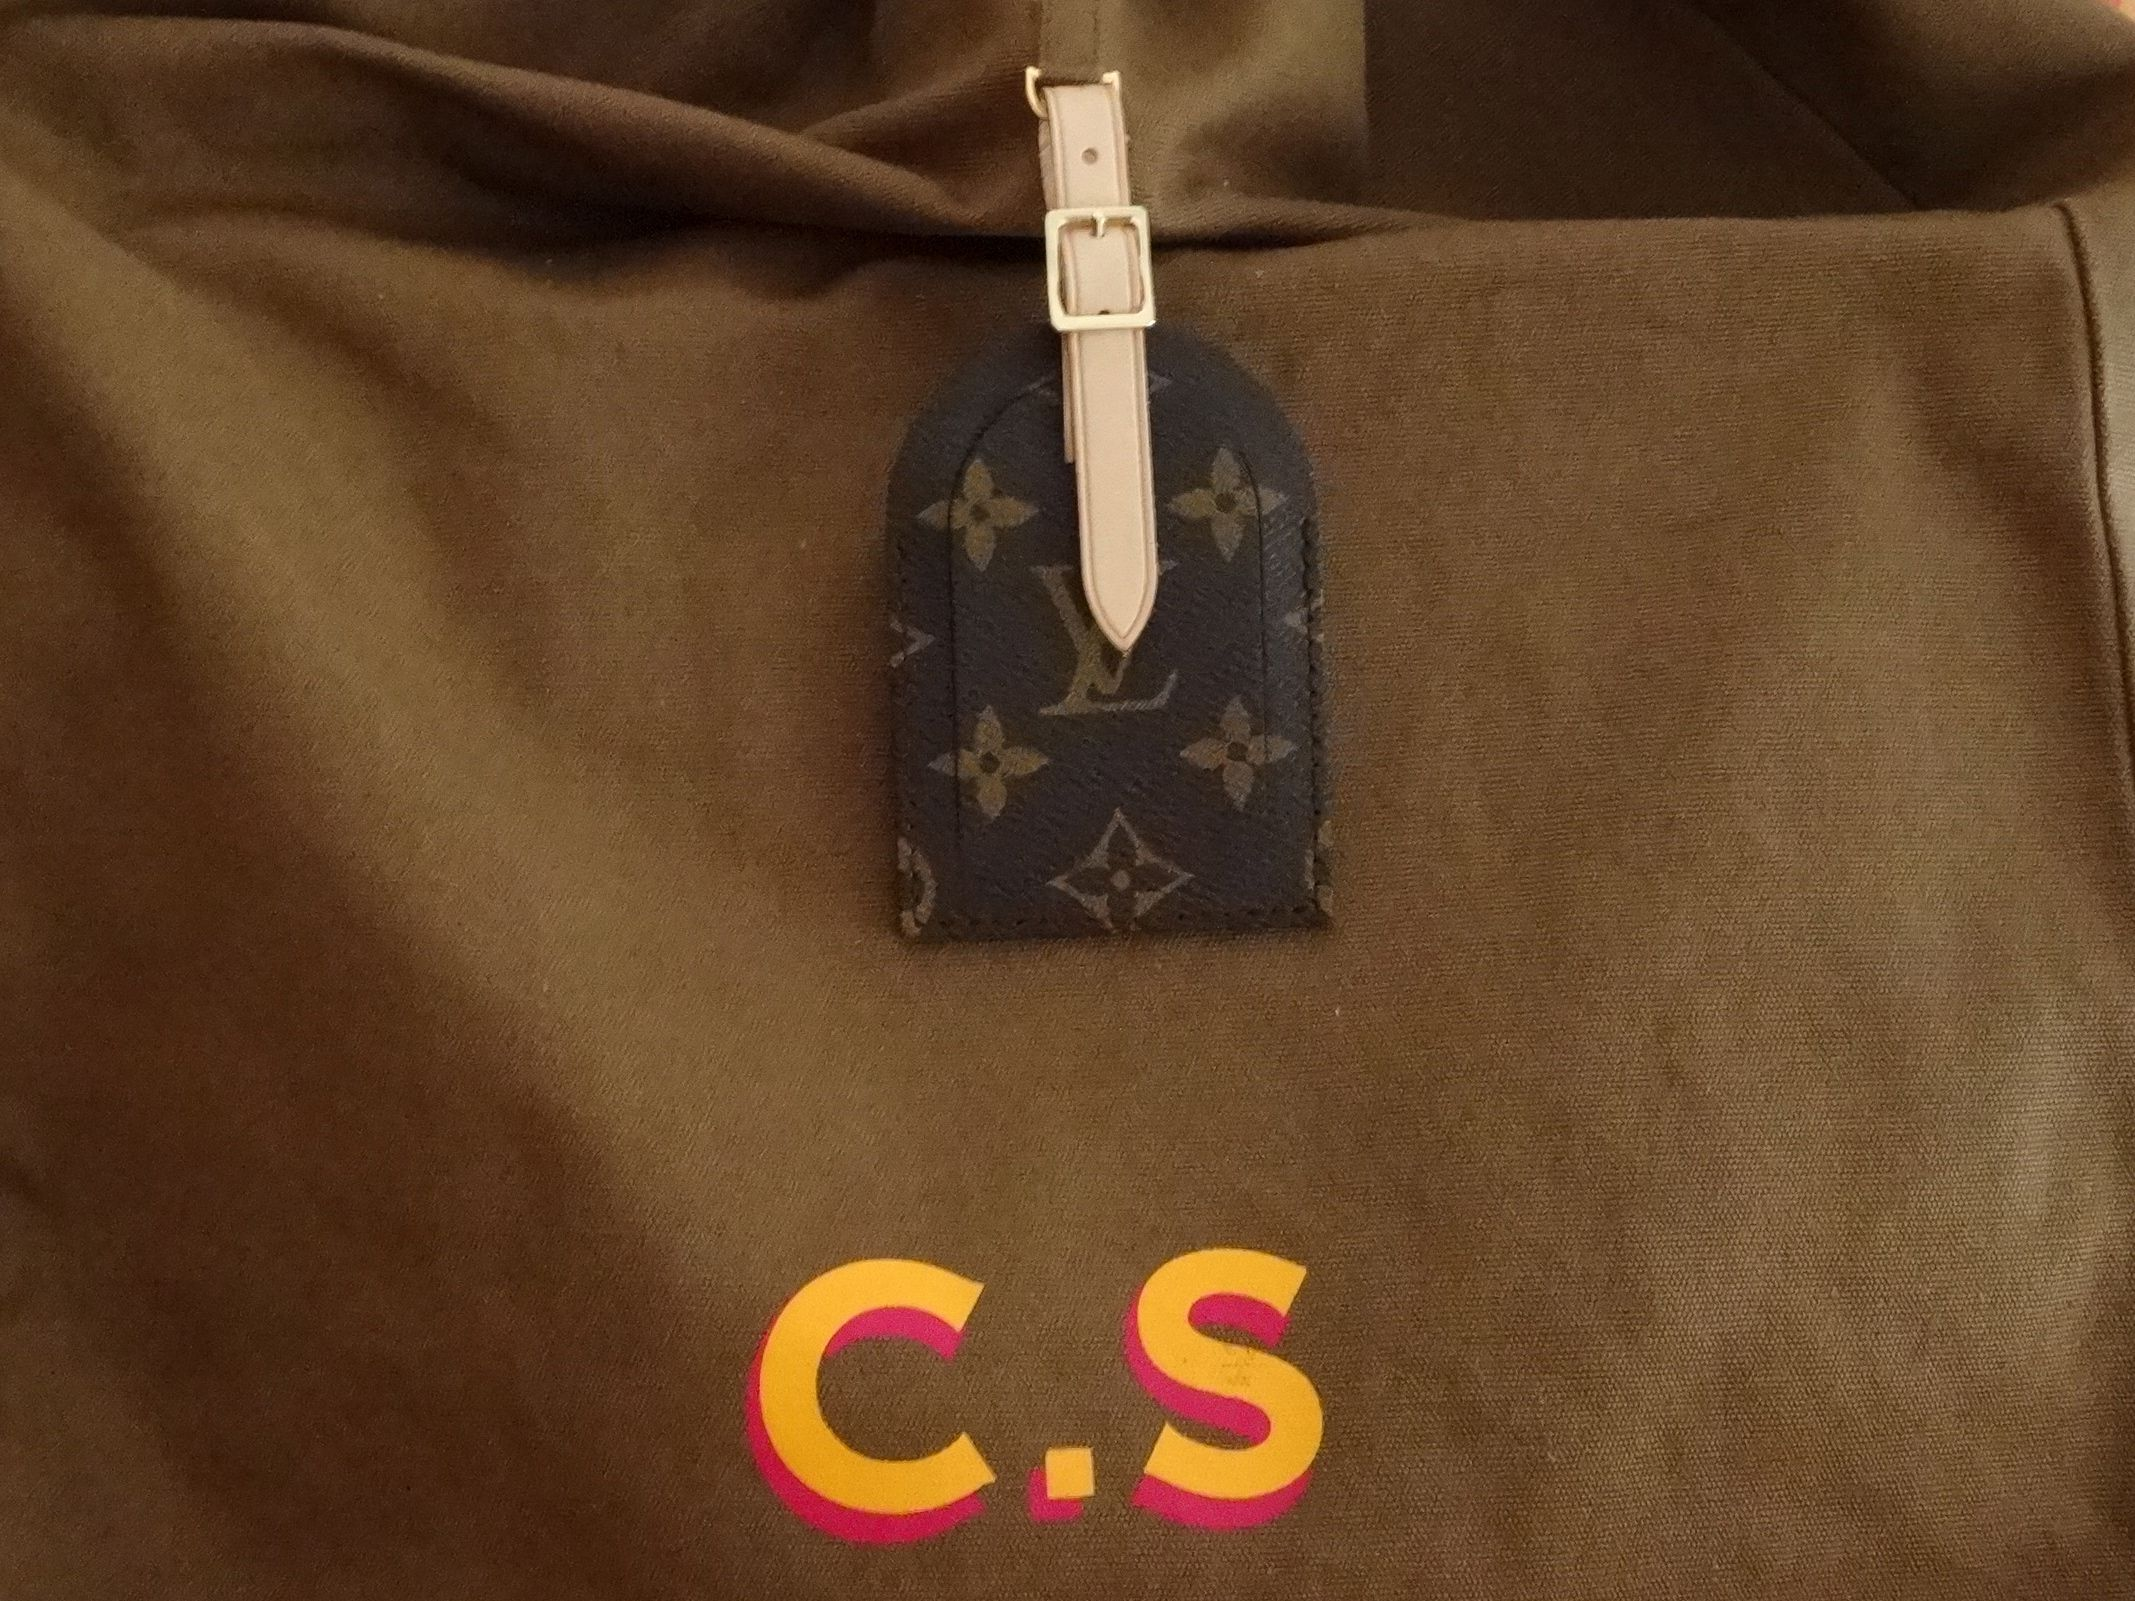 louis vuitton celebrating monogram 2014 cindy sherman dust bag and monogram luggage tag. Black Bedroom Furniture Sets. Home Design Ideas